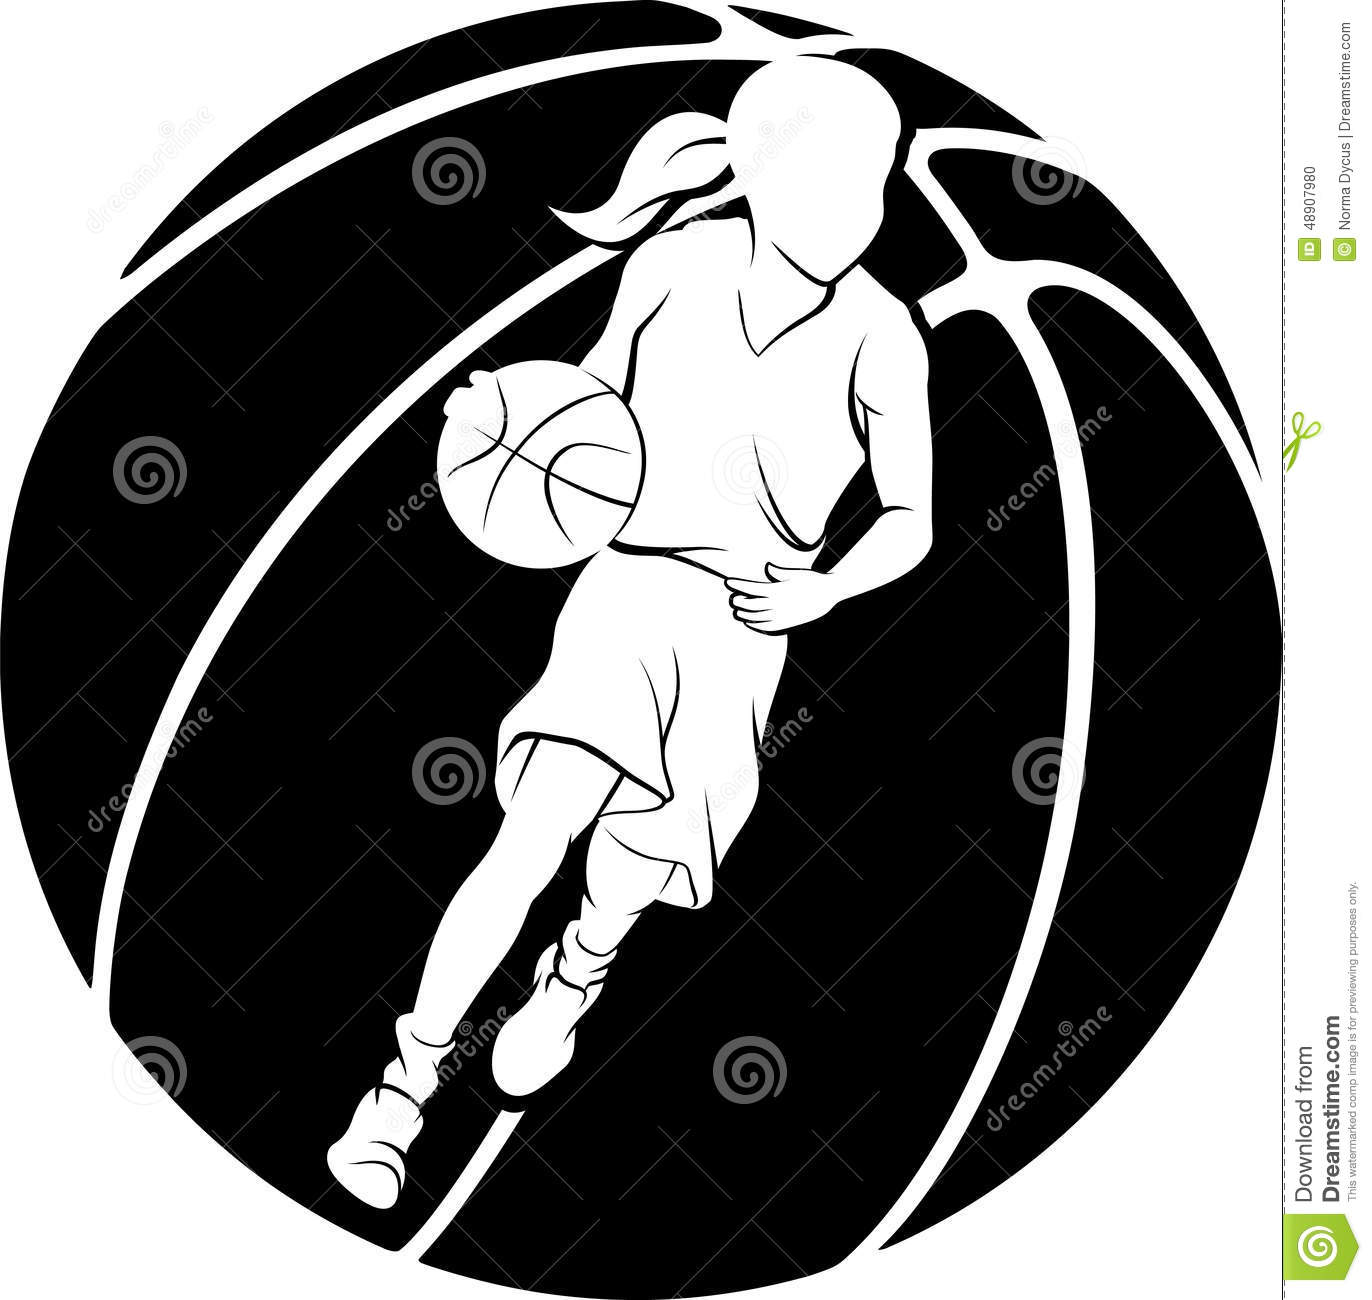 White silhouette of girl dribbling a basketball inside a basketball  silhouette. 520f6ce20f